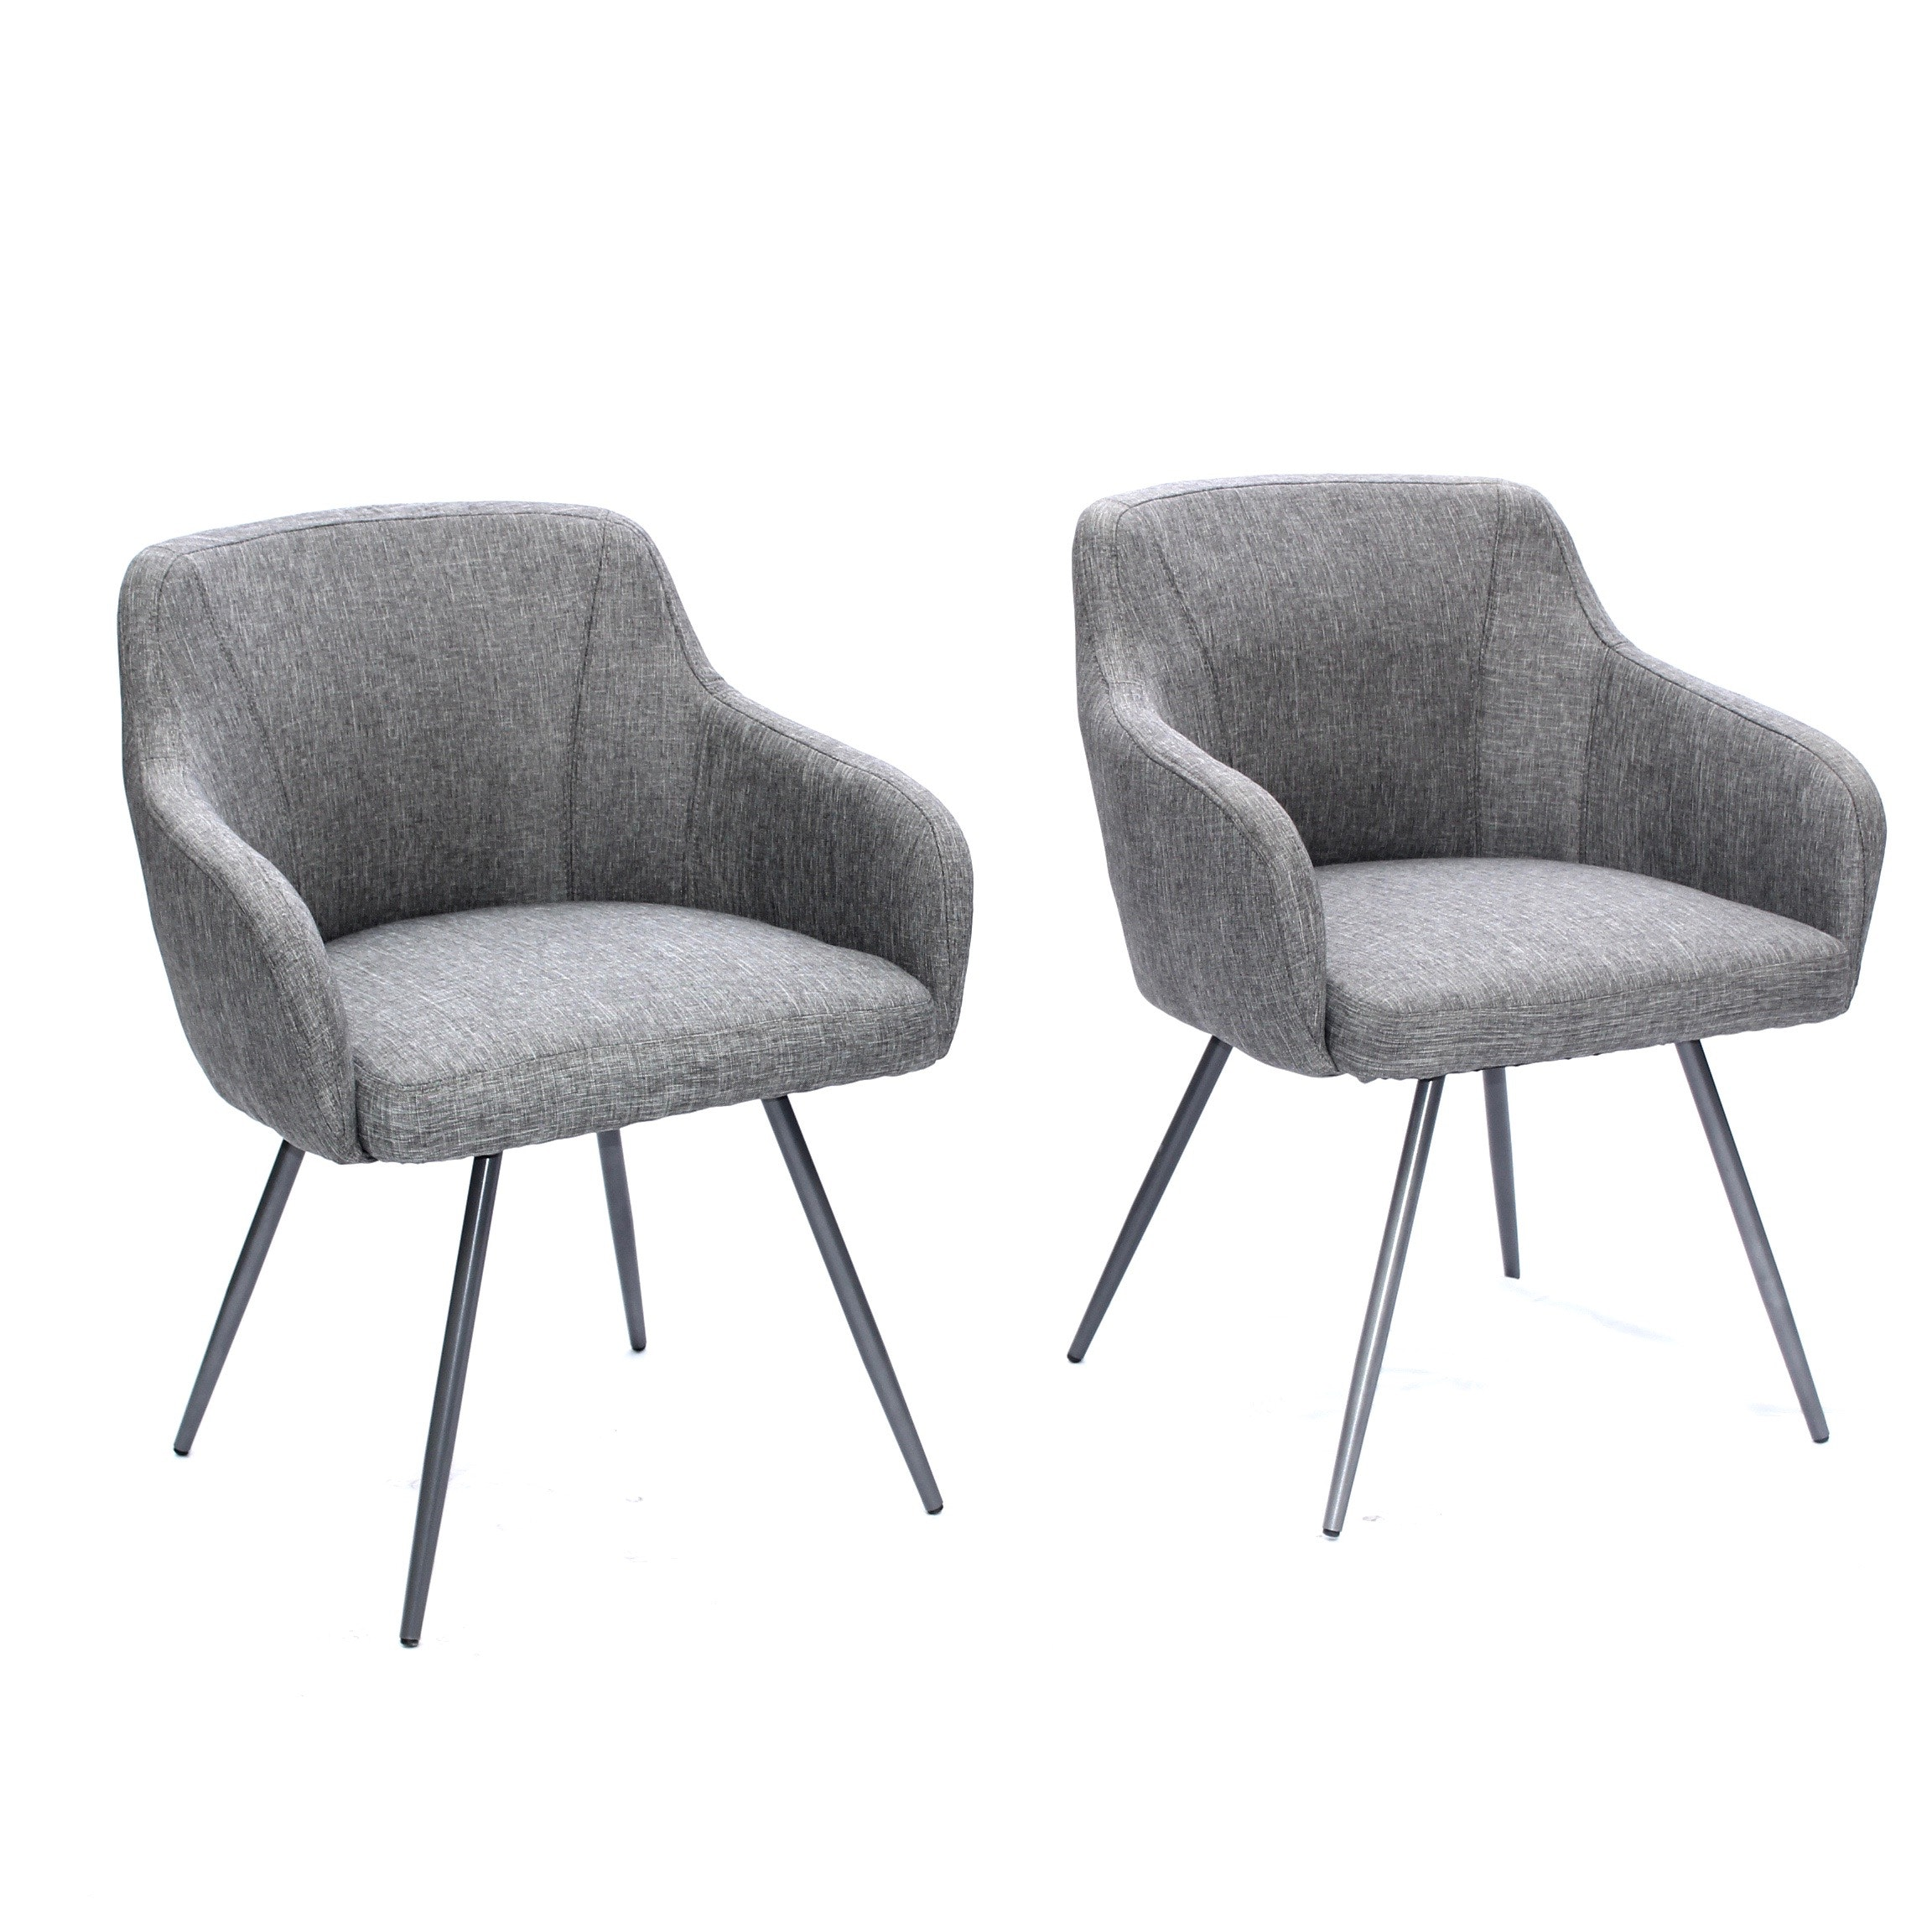 Two Mid-Century Modern Style Gray Upholstered Arm Chairs, Contemporary